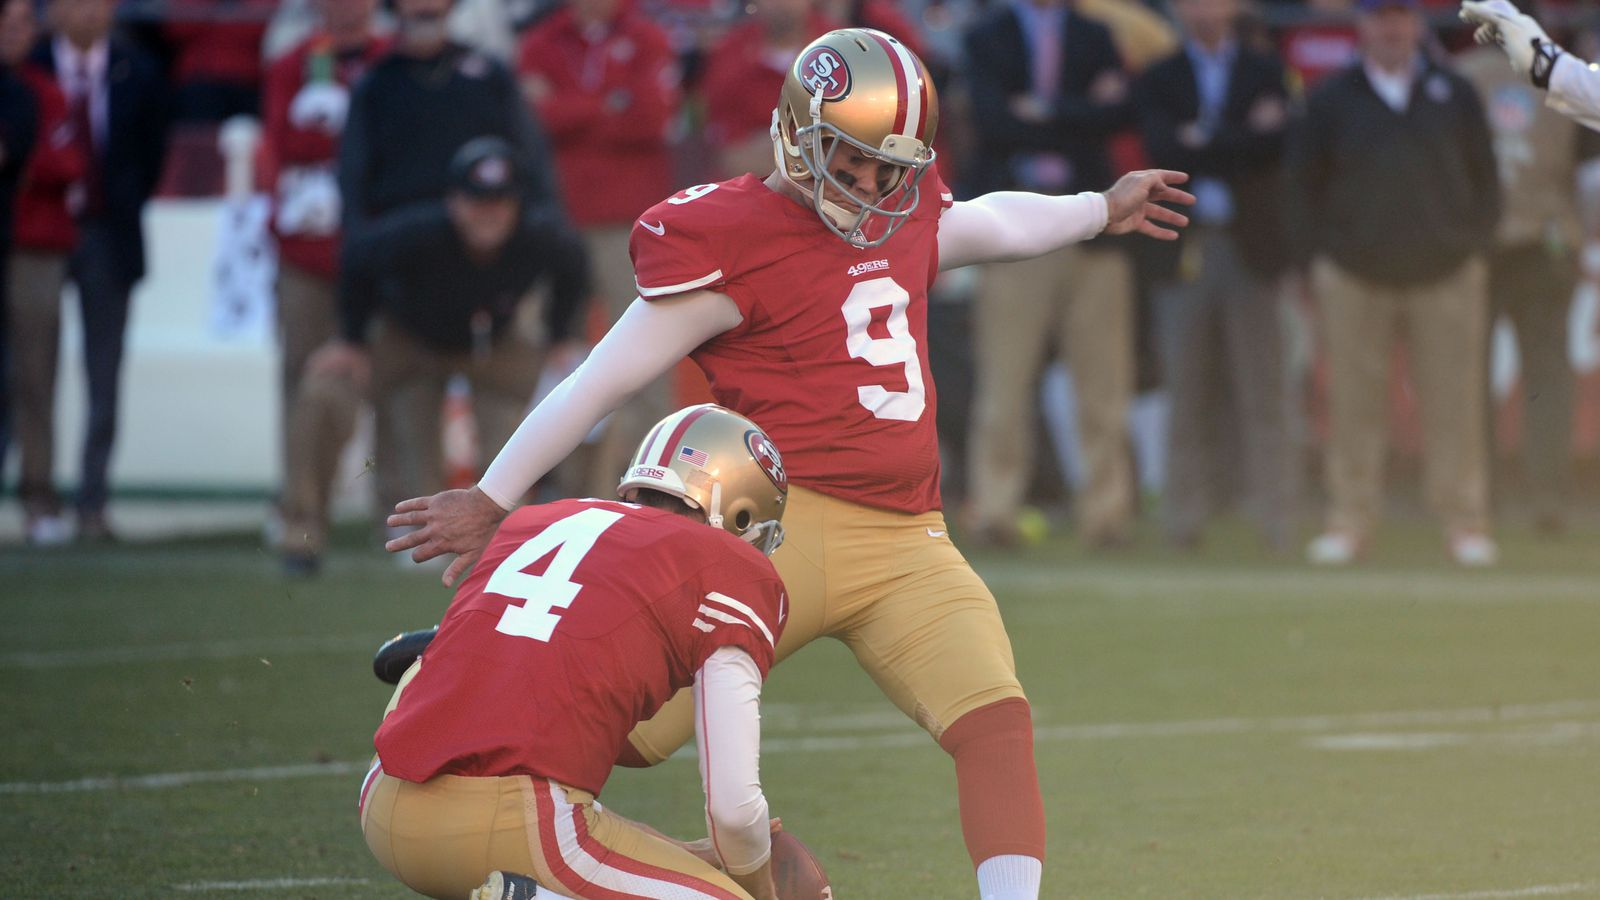 49ers vs. Seahawks 2013: Second quarter score update and ...